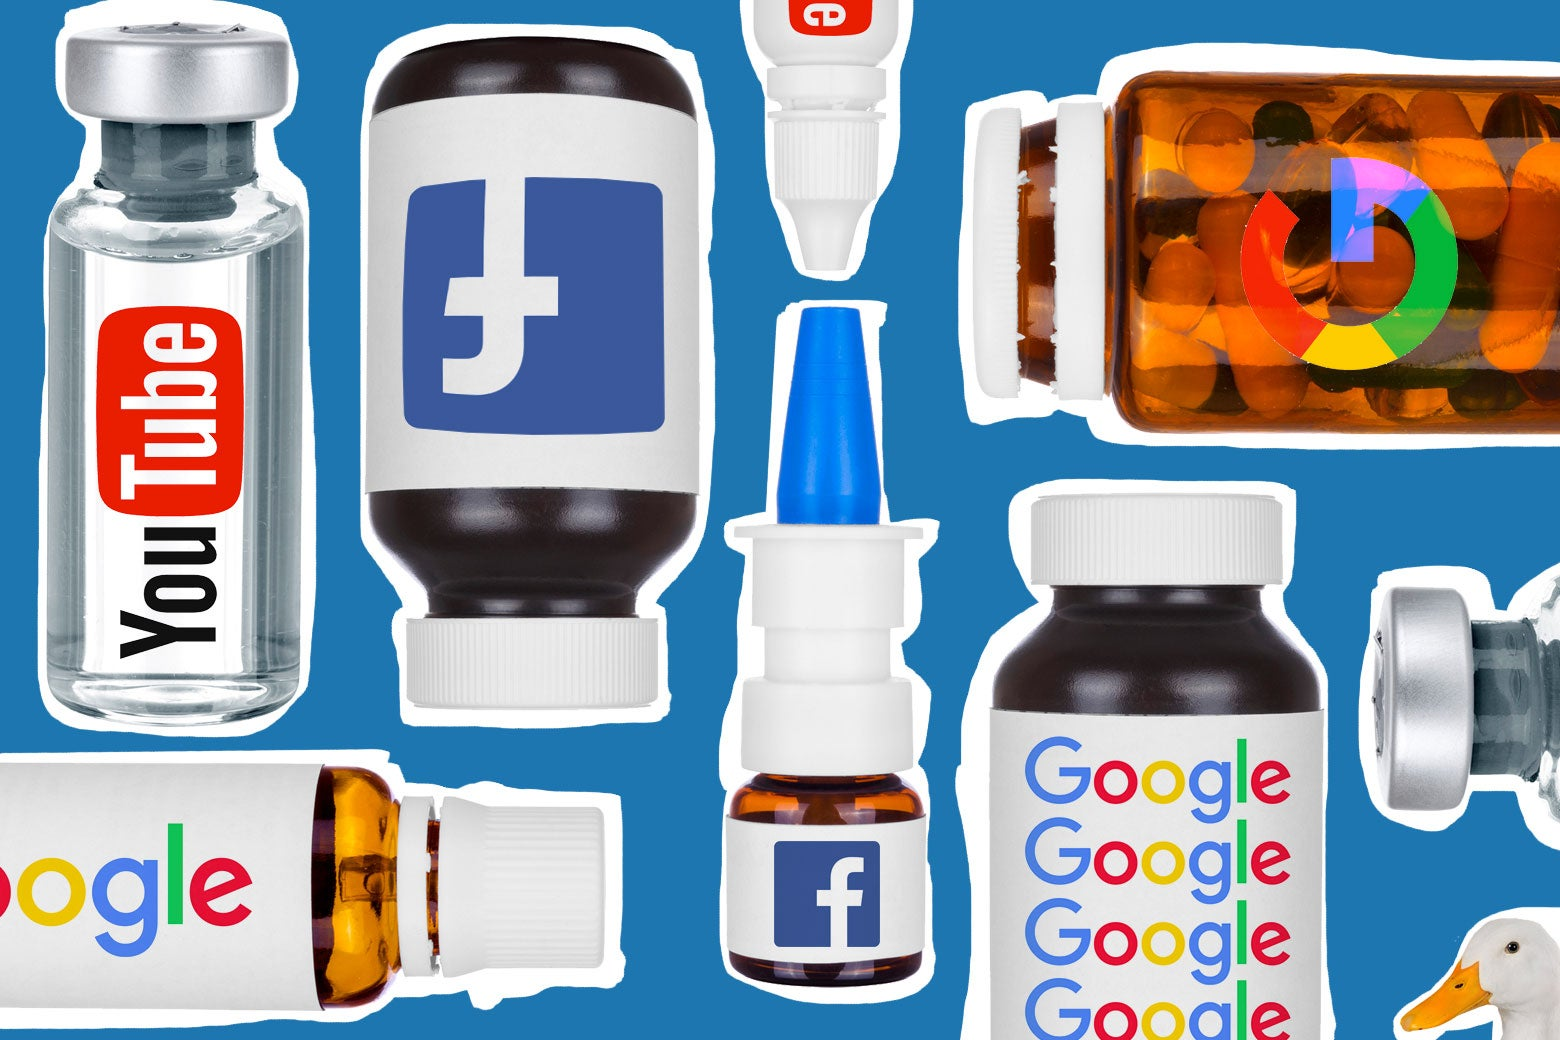 Logos for Facebook, Google, and Youtube on various medicine bottles, along with a duck.